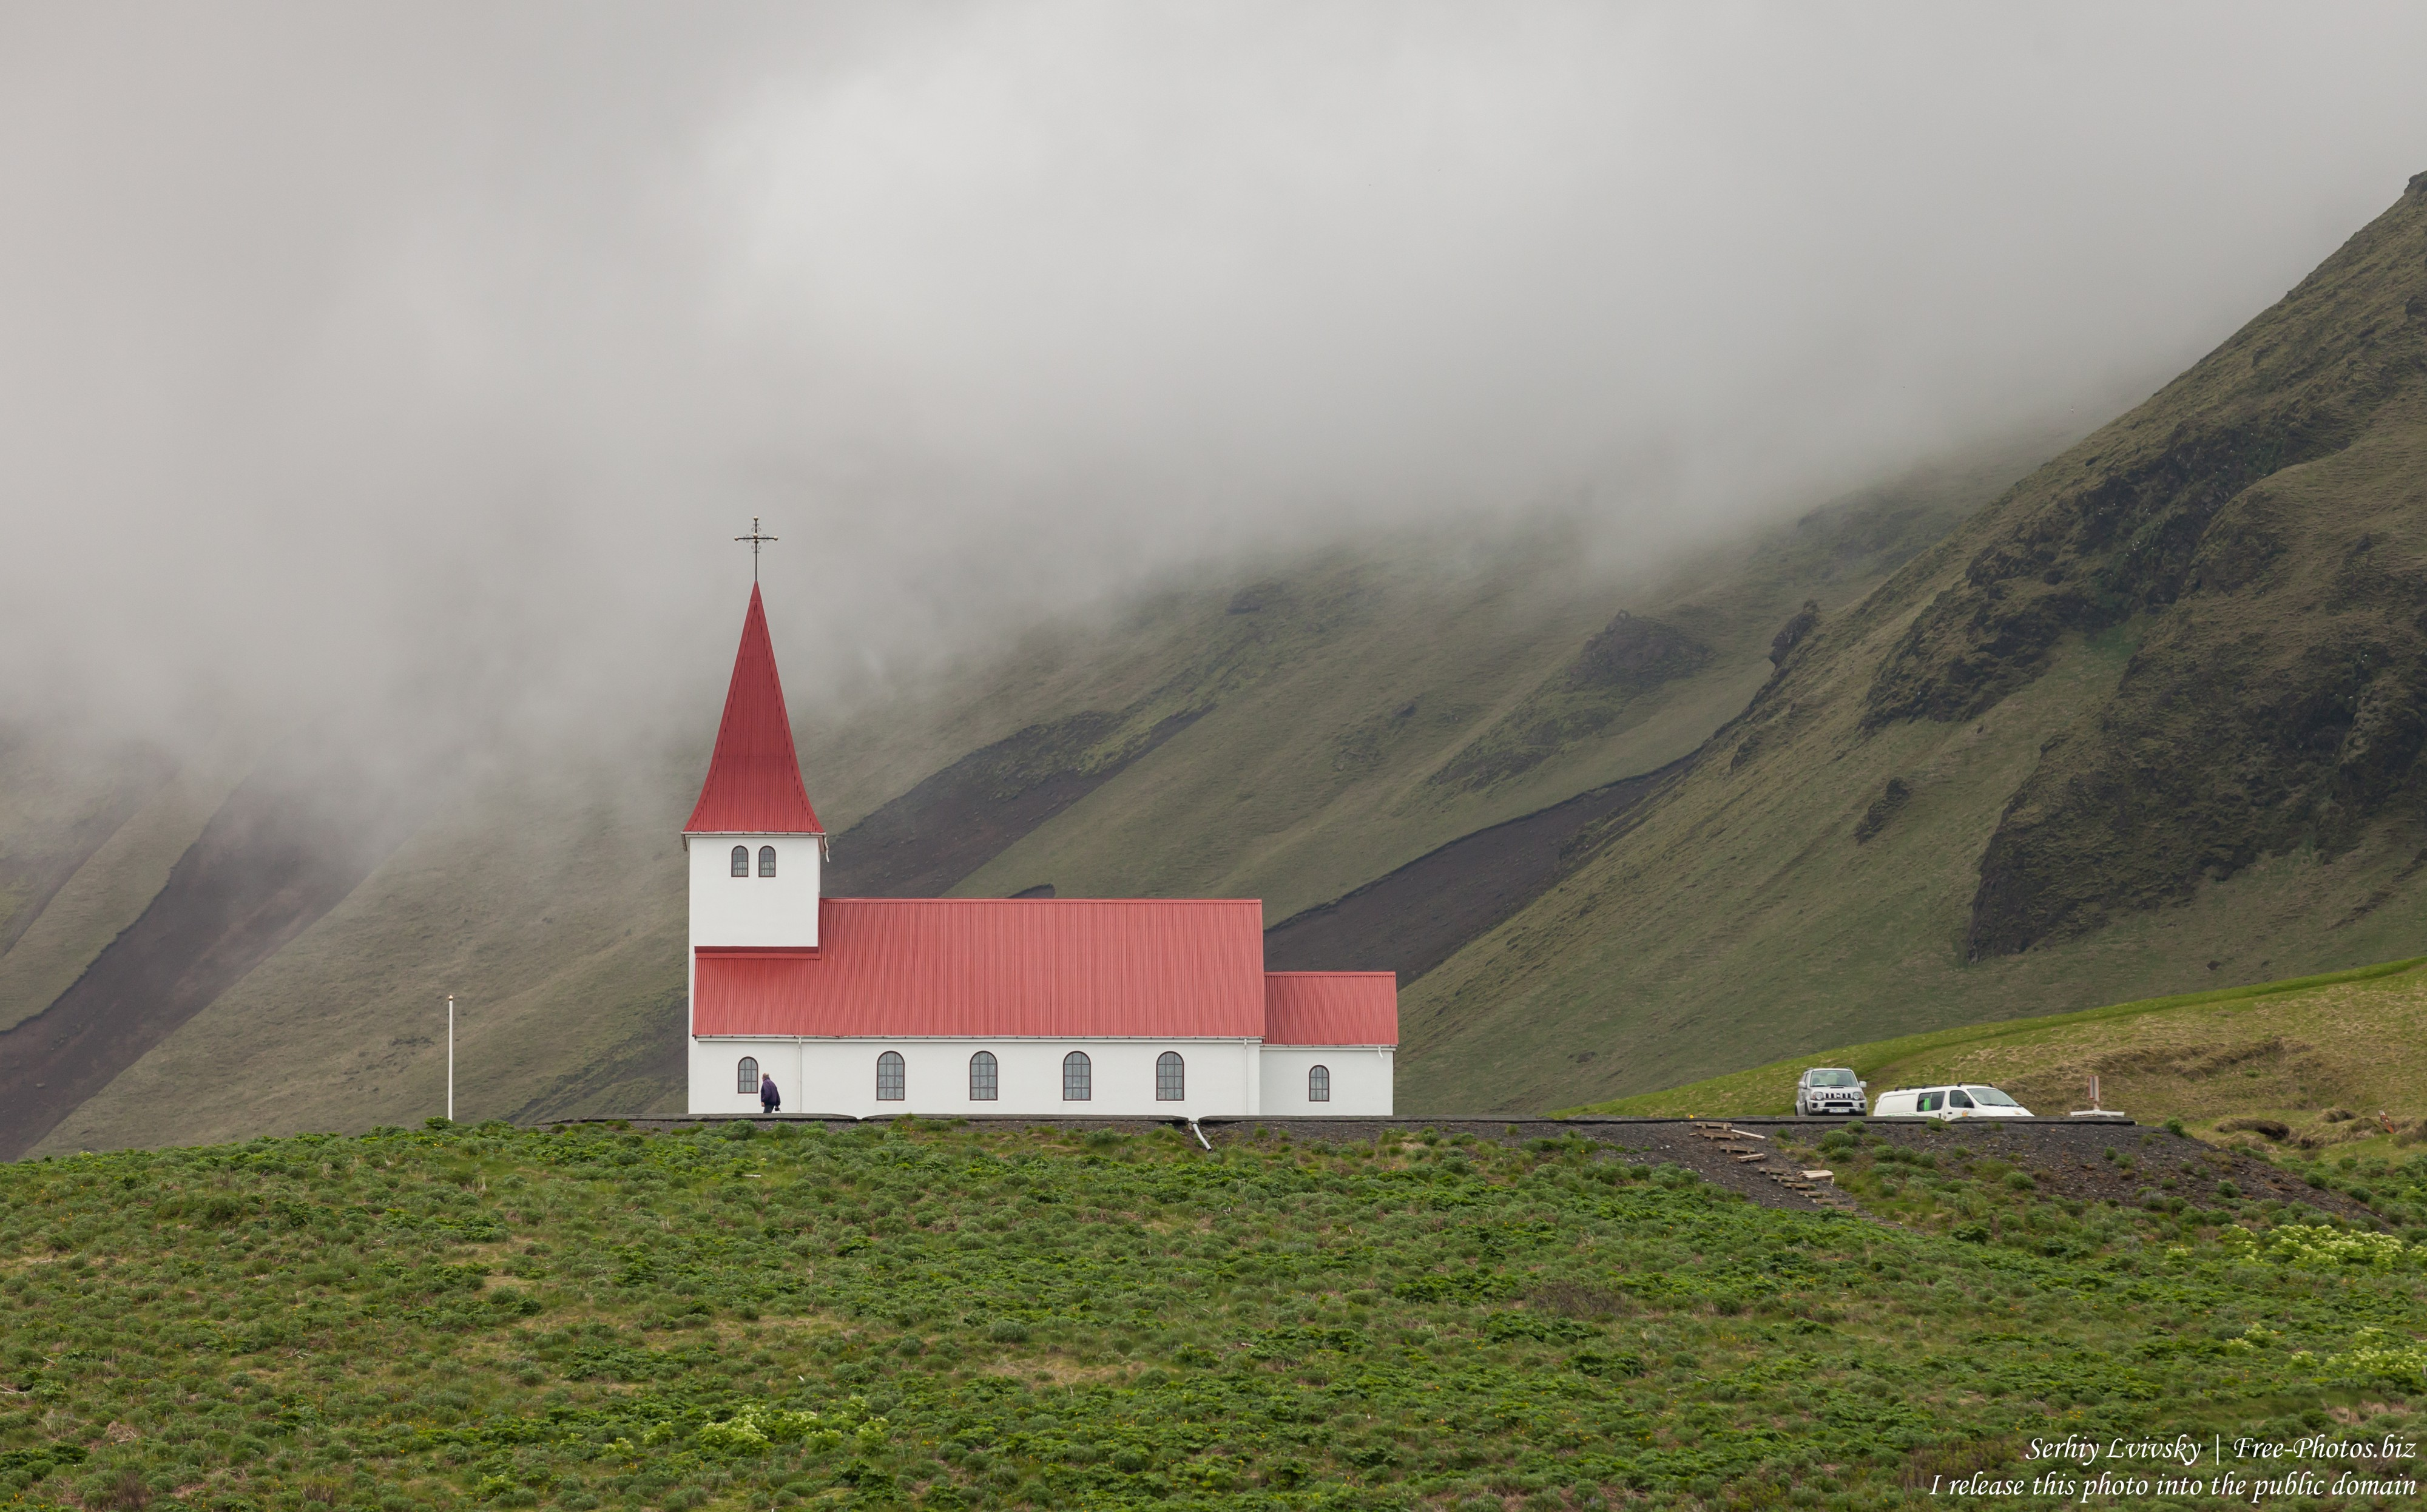 Vik, Iceland, photographed in May 2019 by Serhiy Lvivsky, picture 6